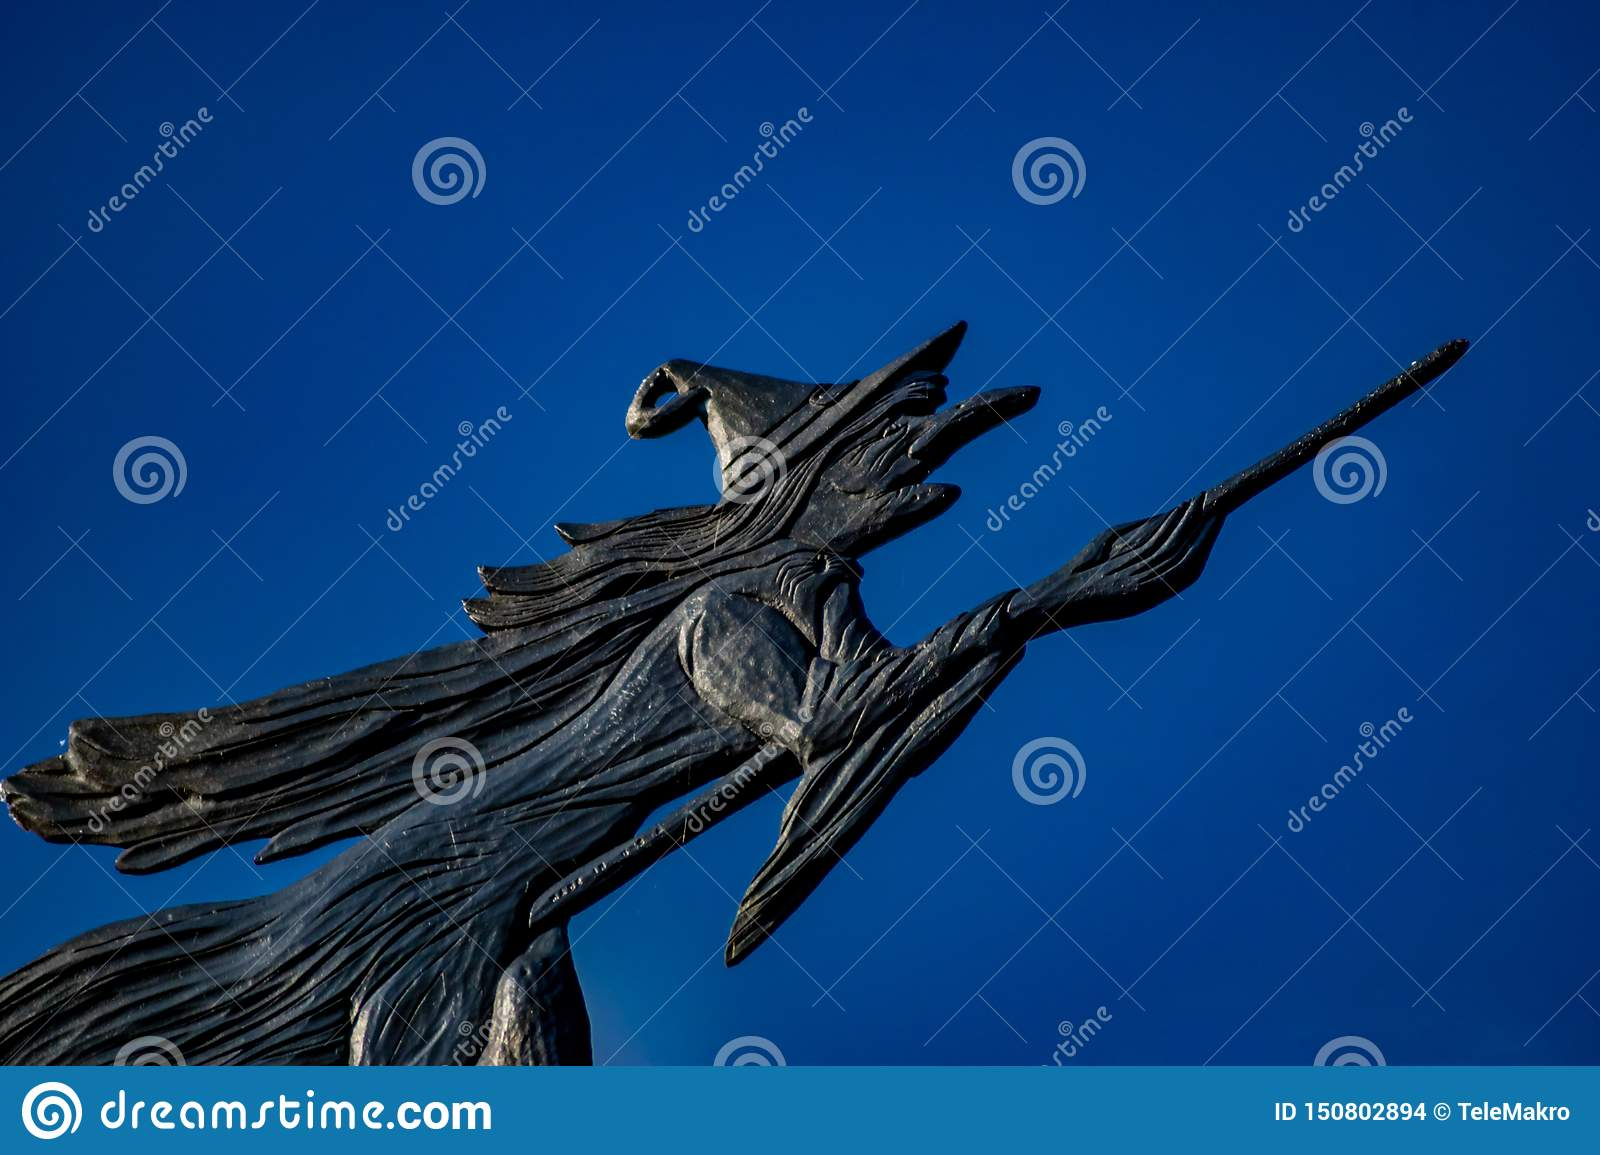 Weather vane of a witch flying on a broom